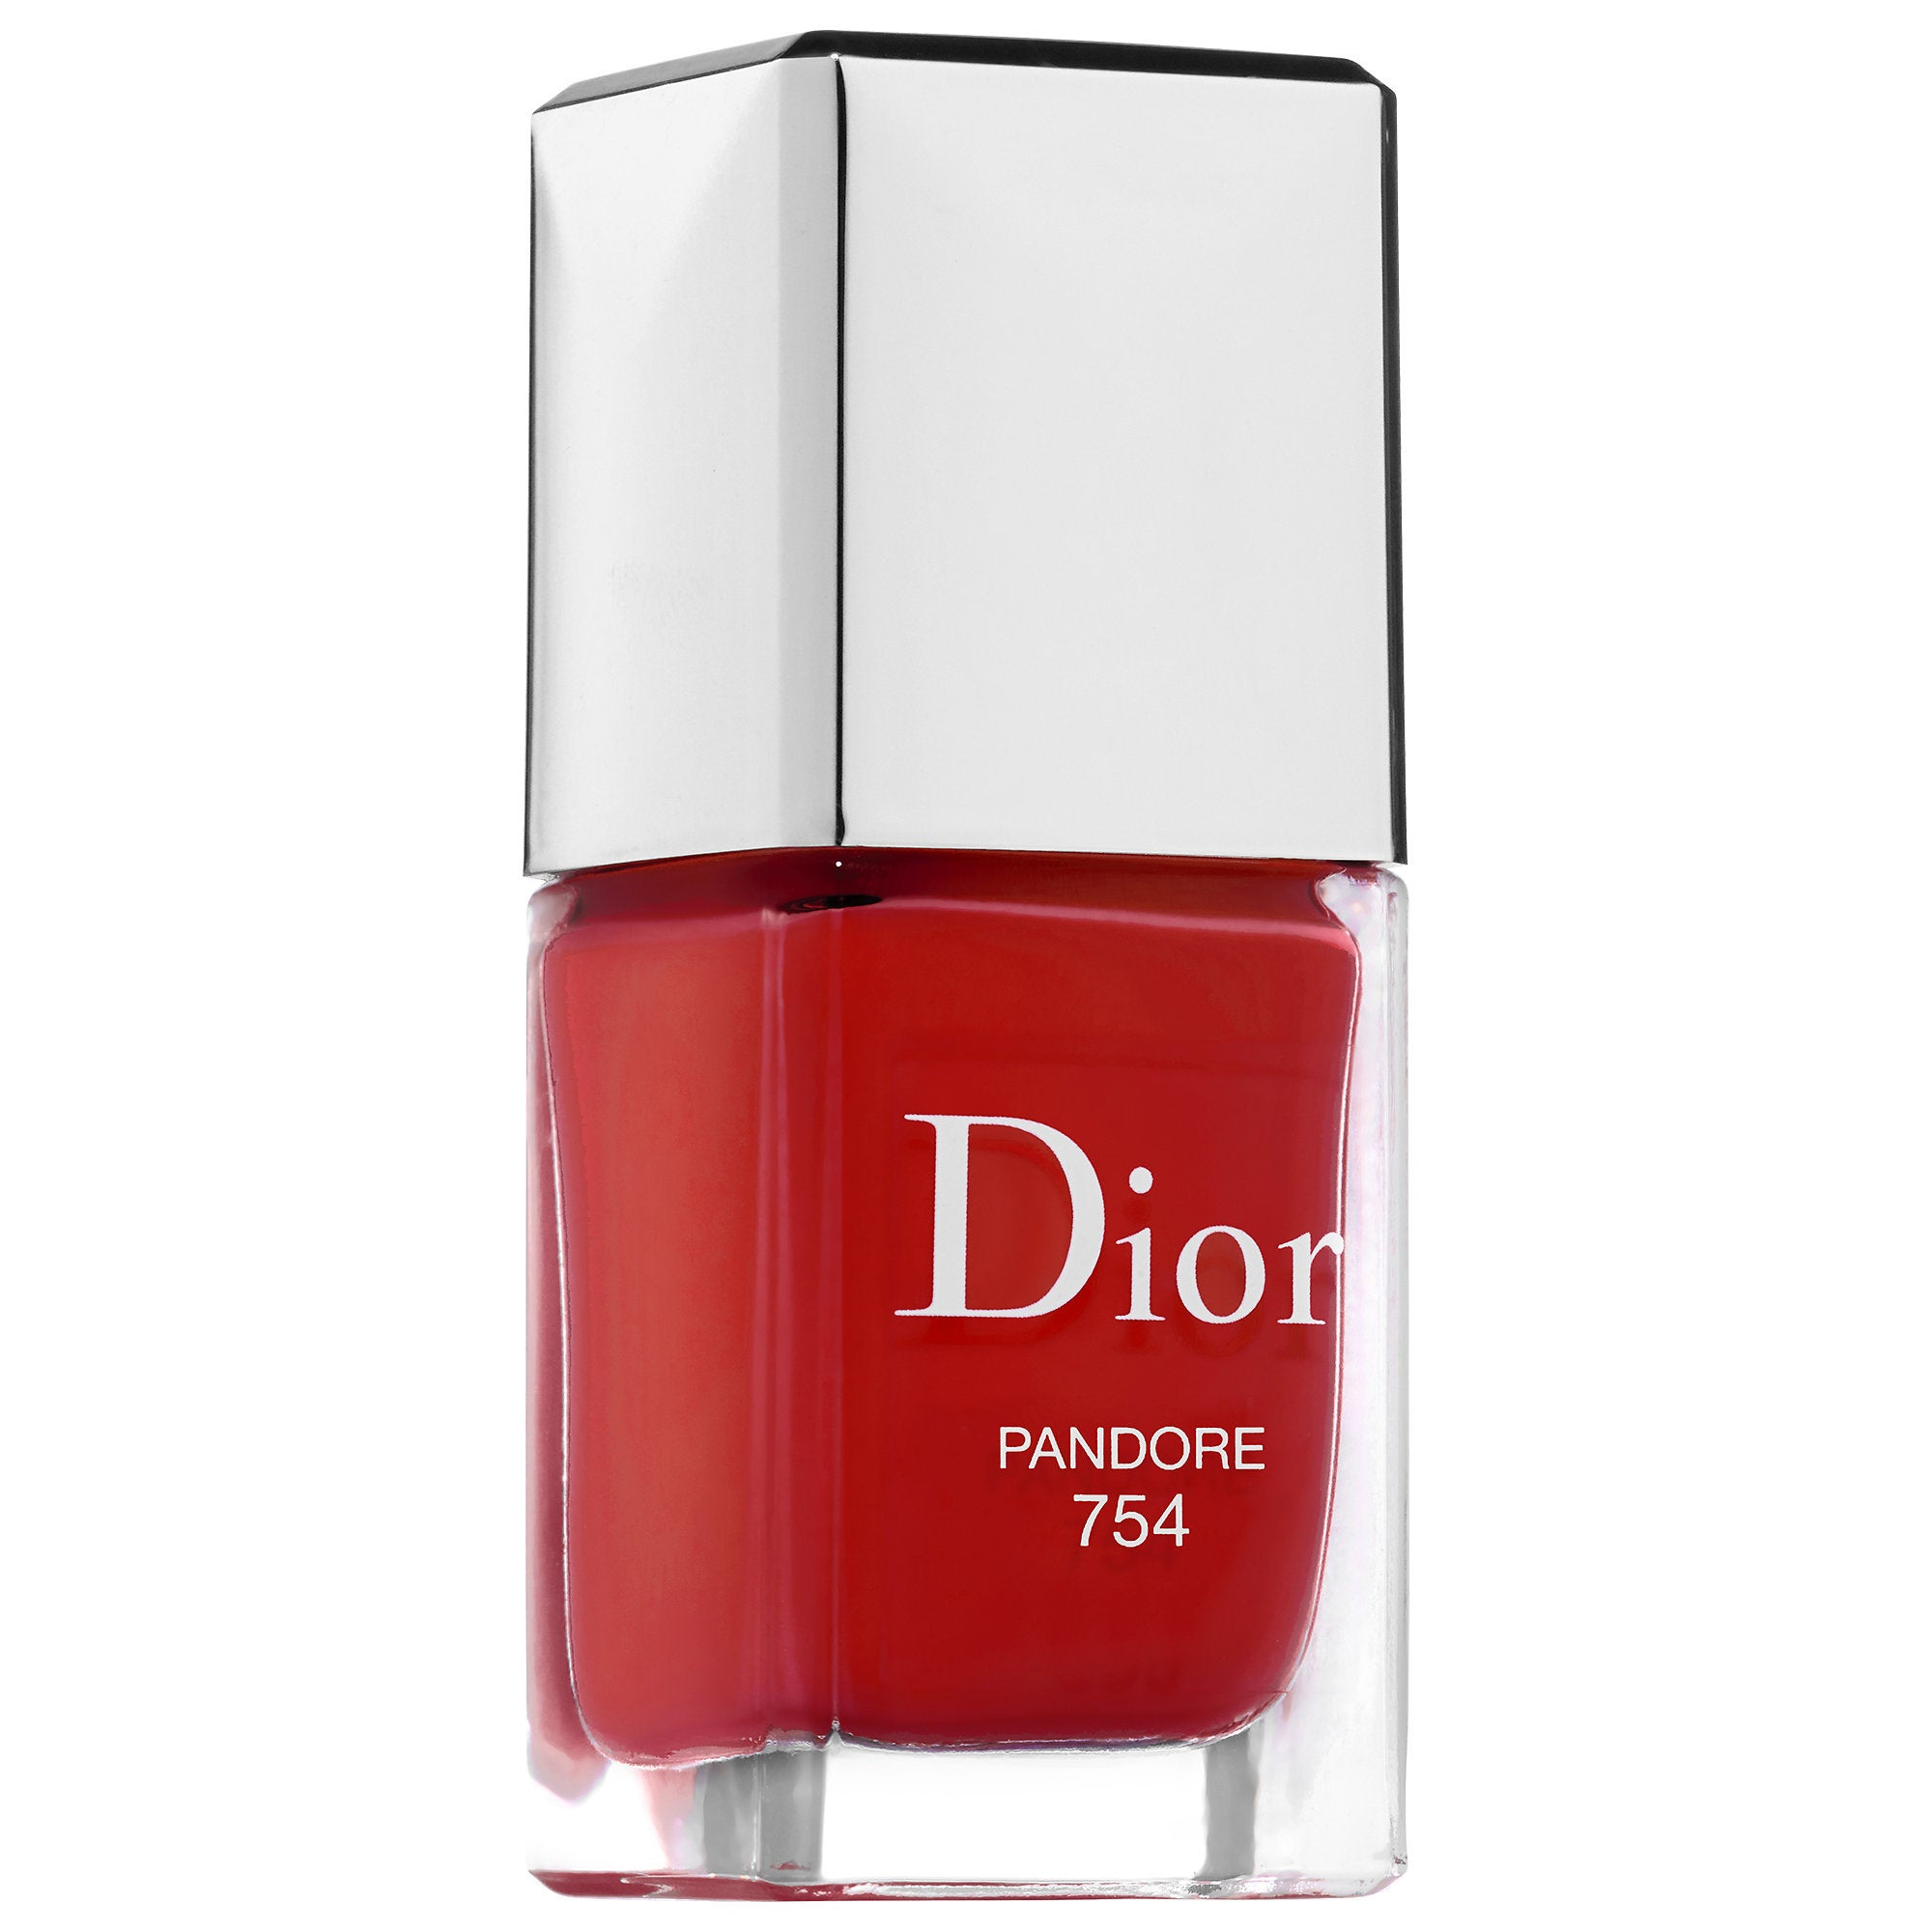 Dior Vernis Gel Shine and Long Wear Nail Lacquer in Pandore